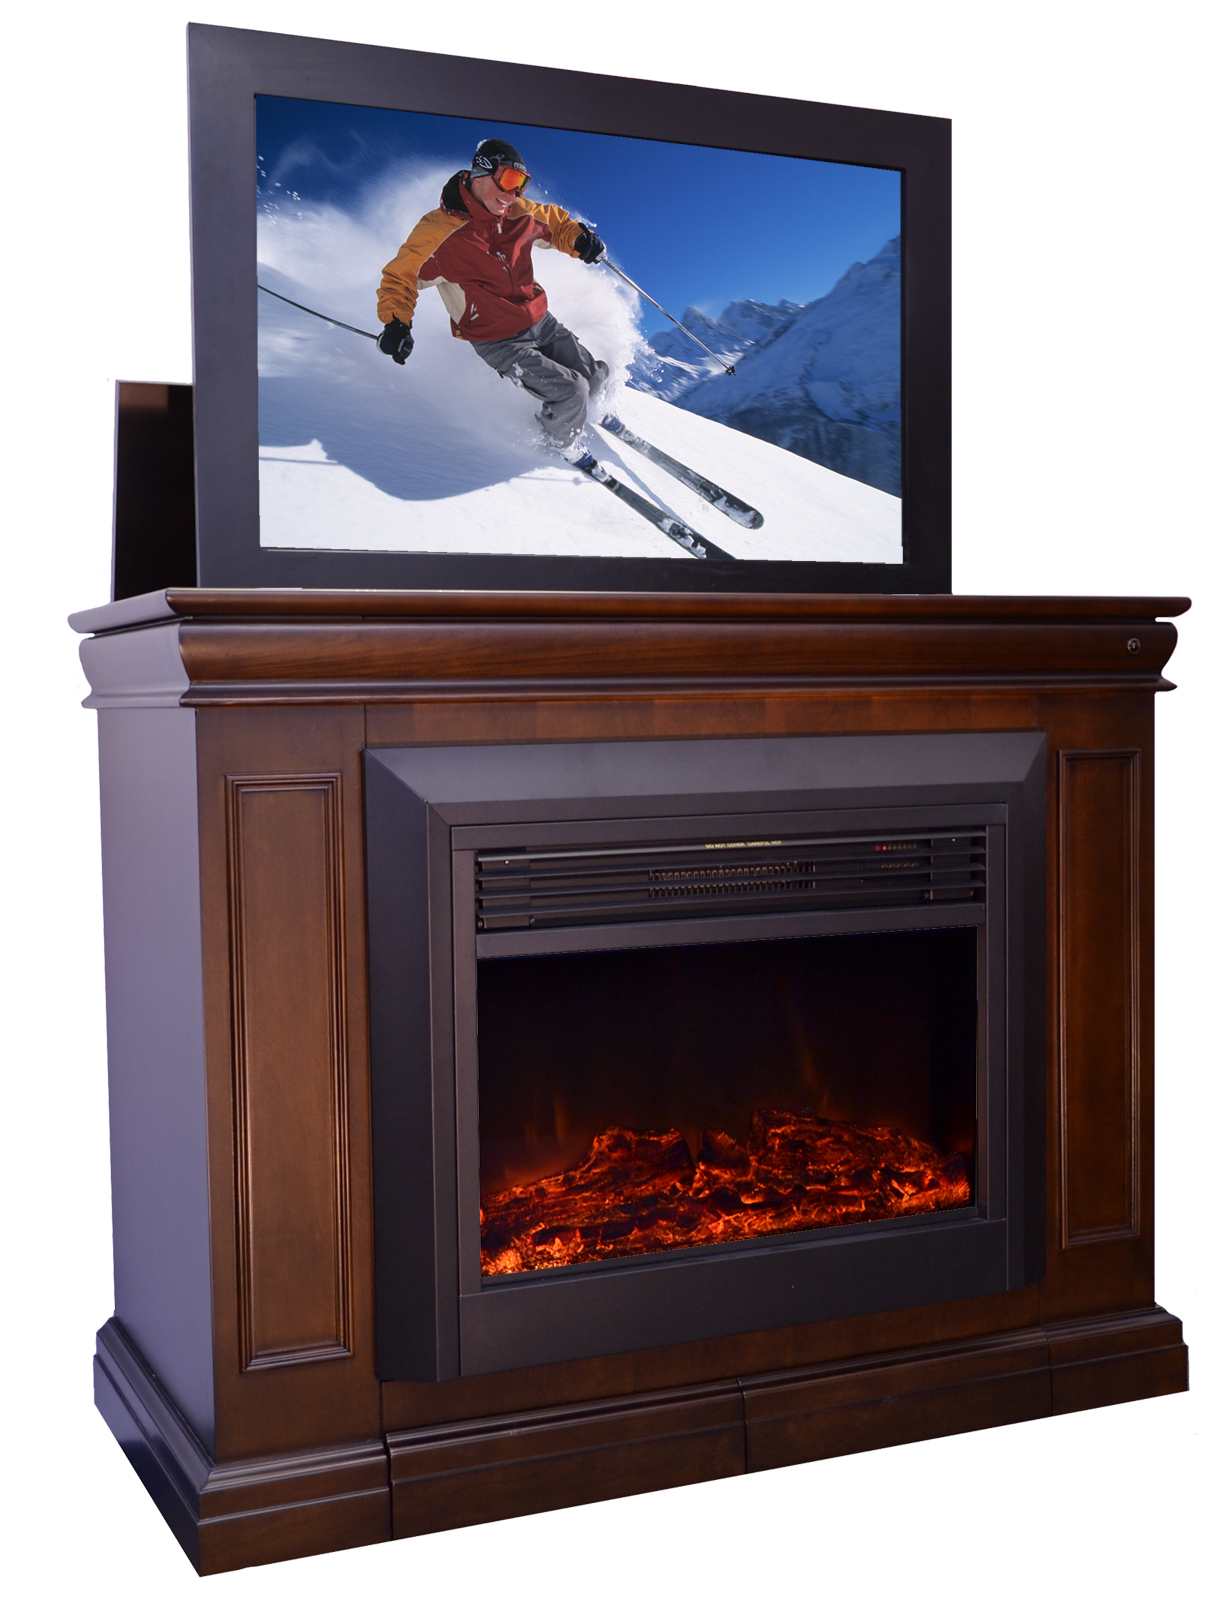 Tv Lift Cabinet Australia The Conestoga Tv Lift Cabinet With Electric Fireplace For